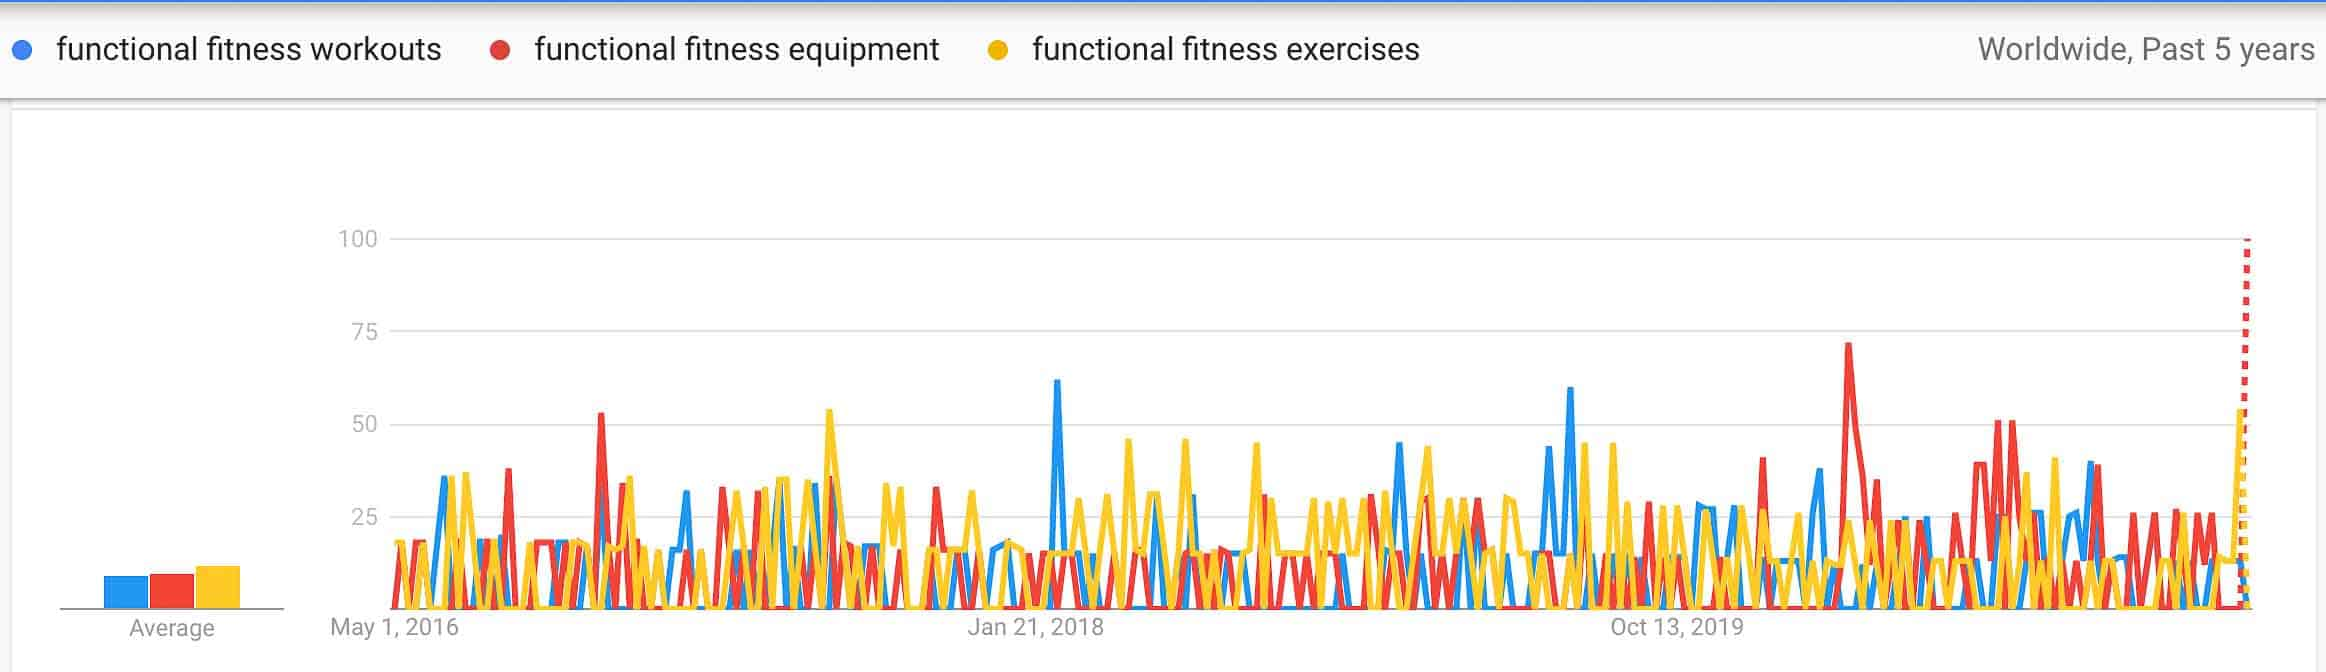 functional fitness trends